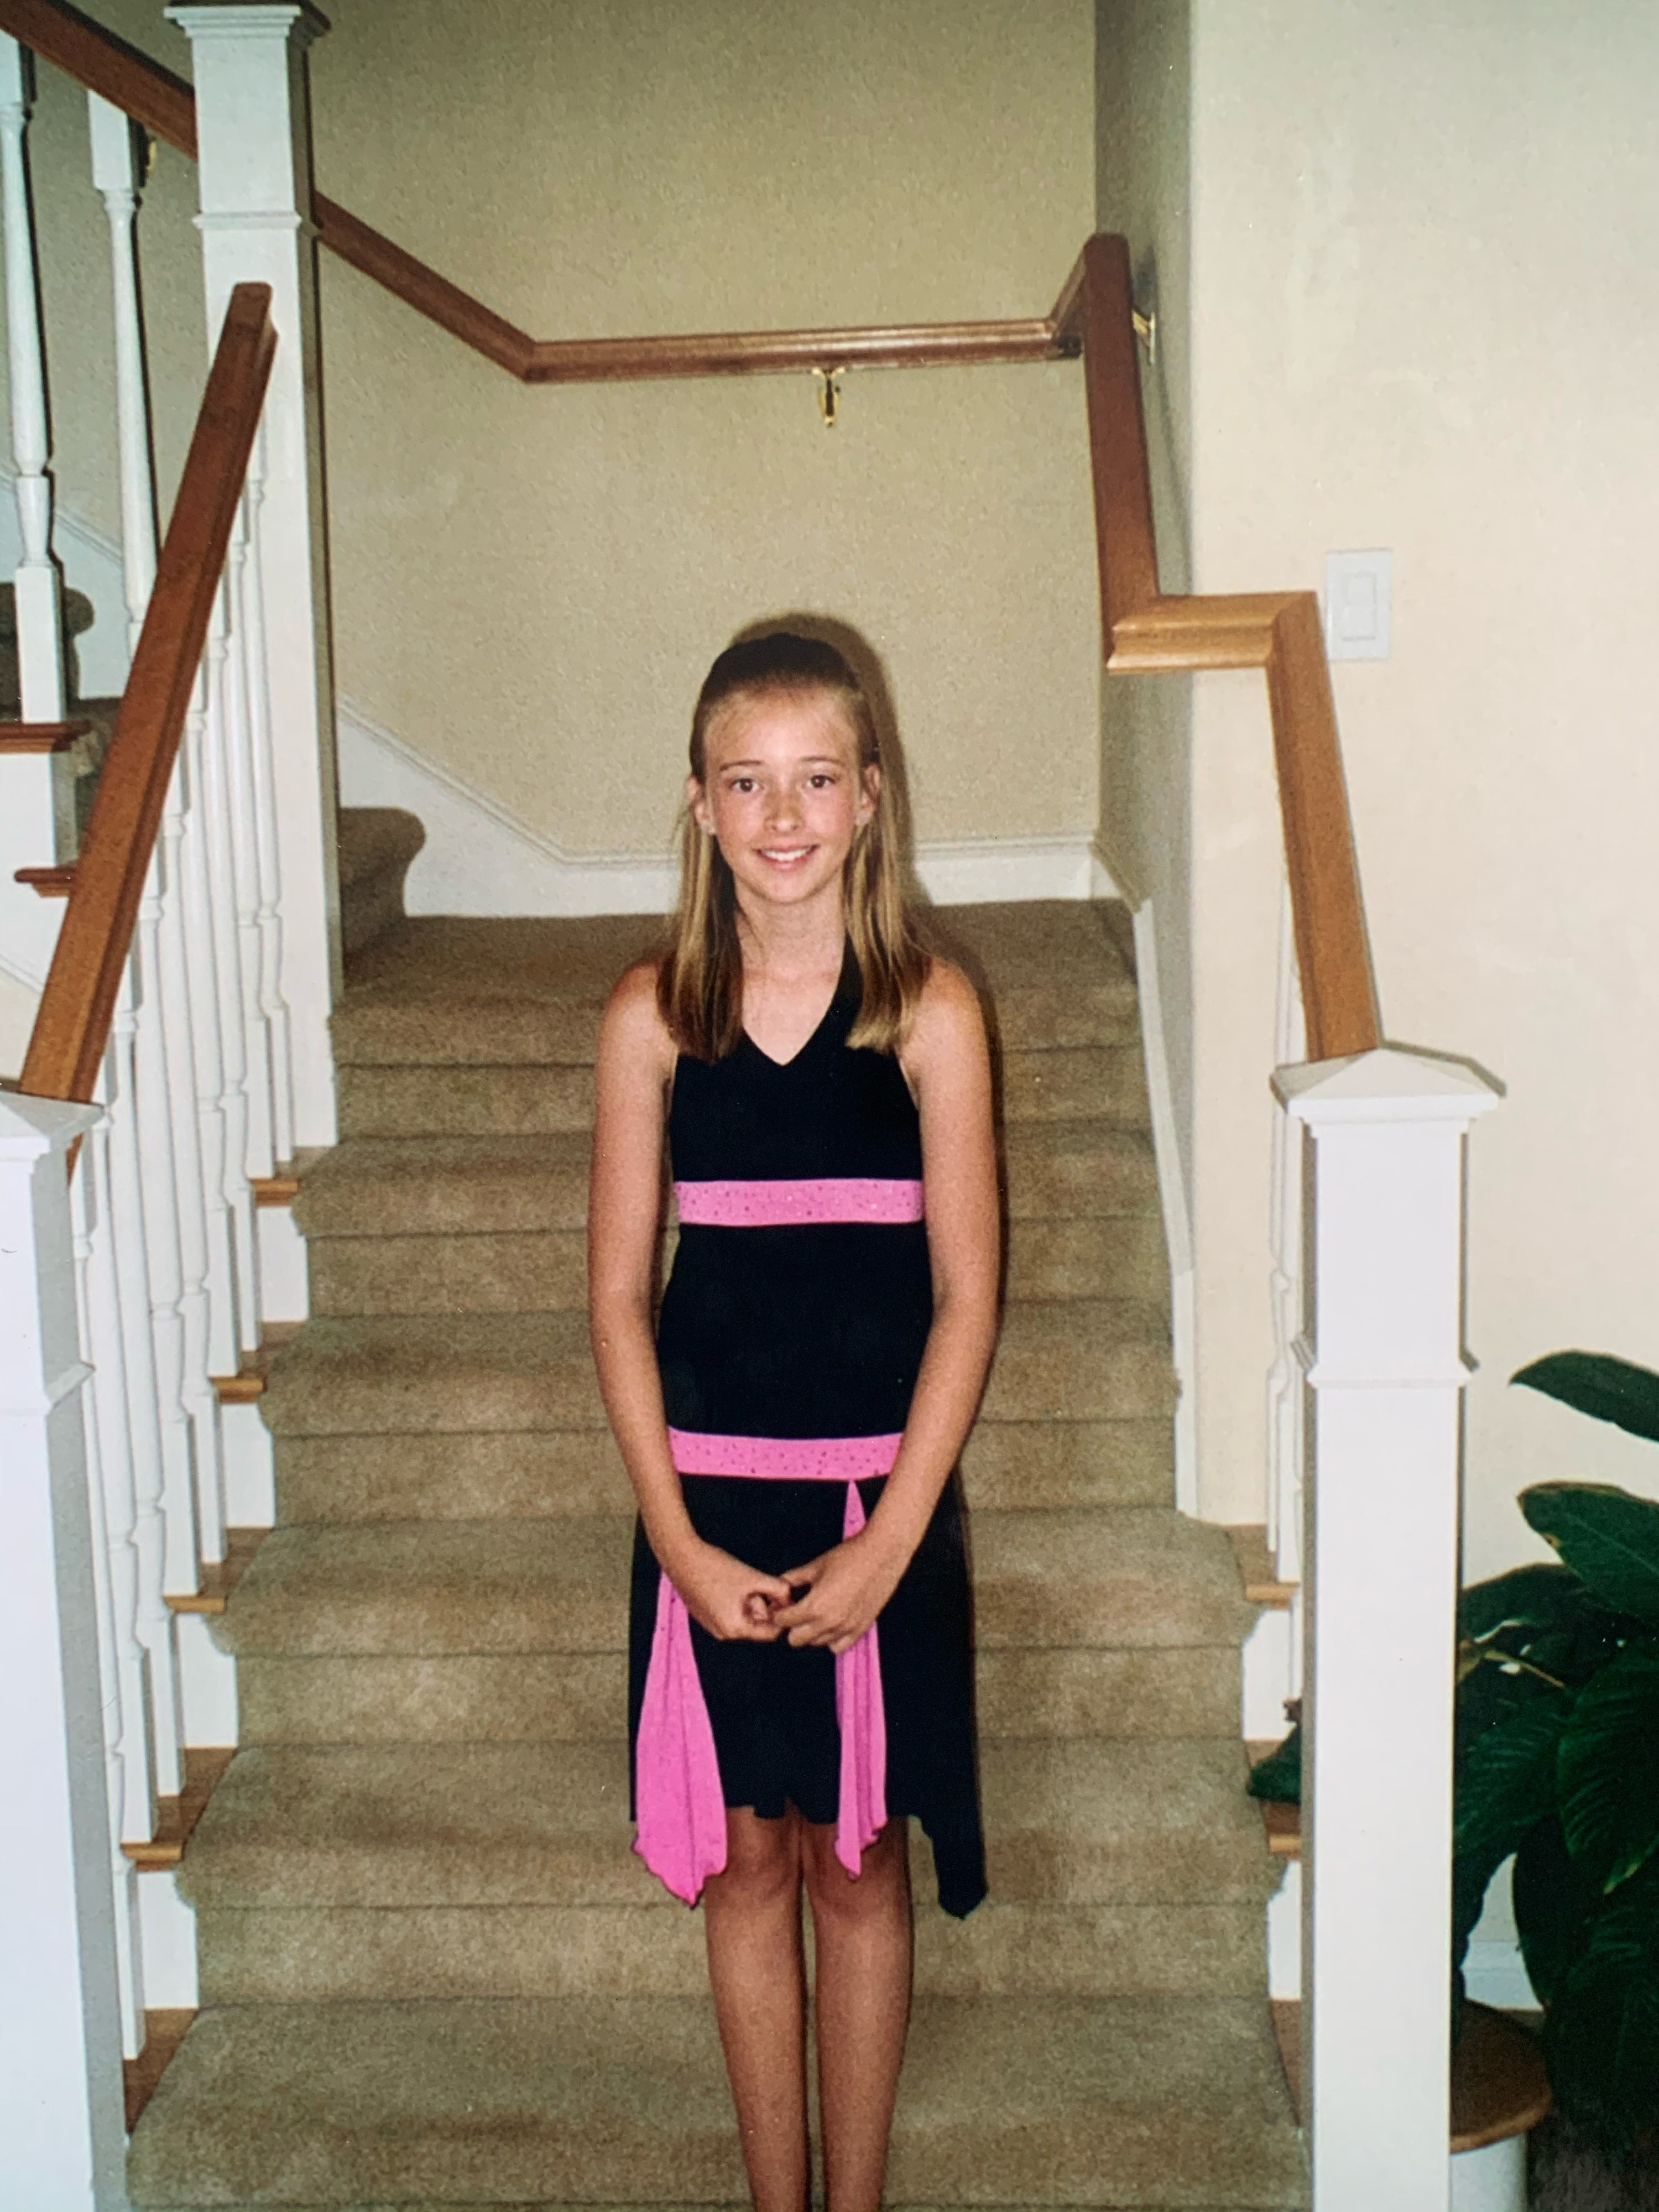 A girl wearing a simple black dress with bright pink embellishments